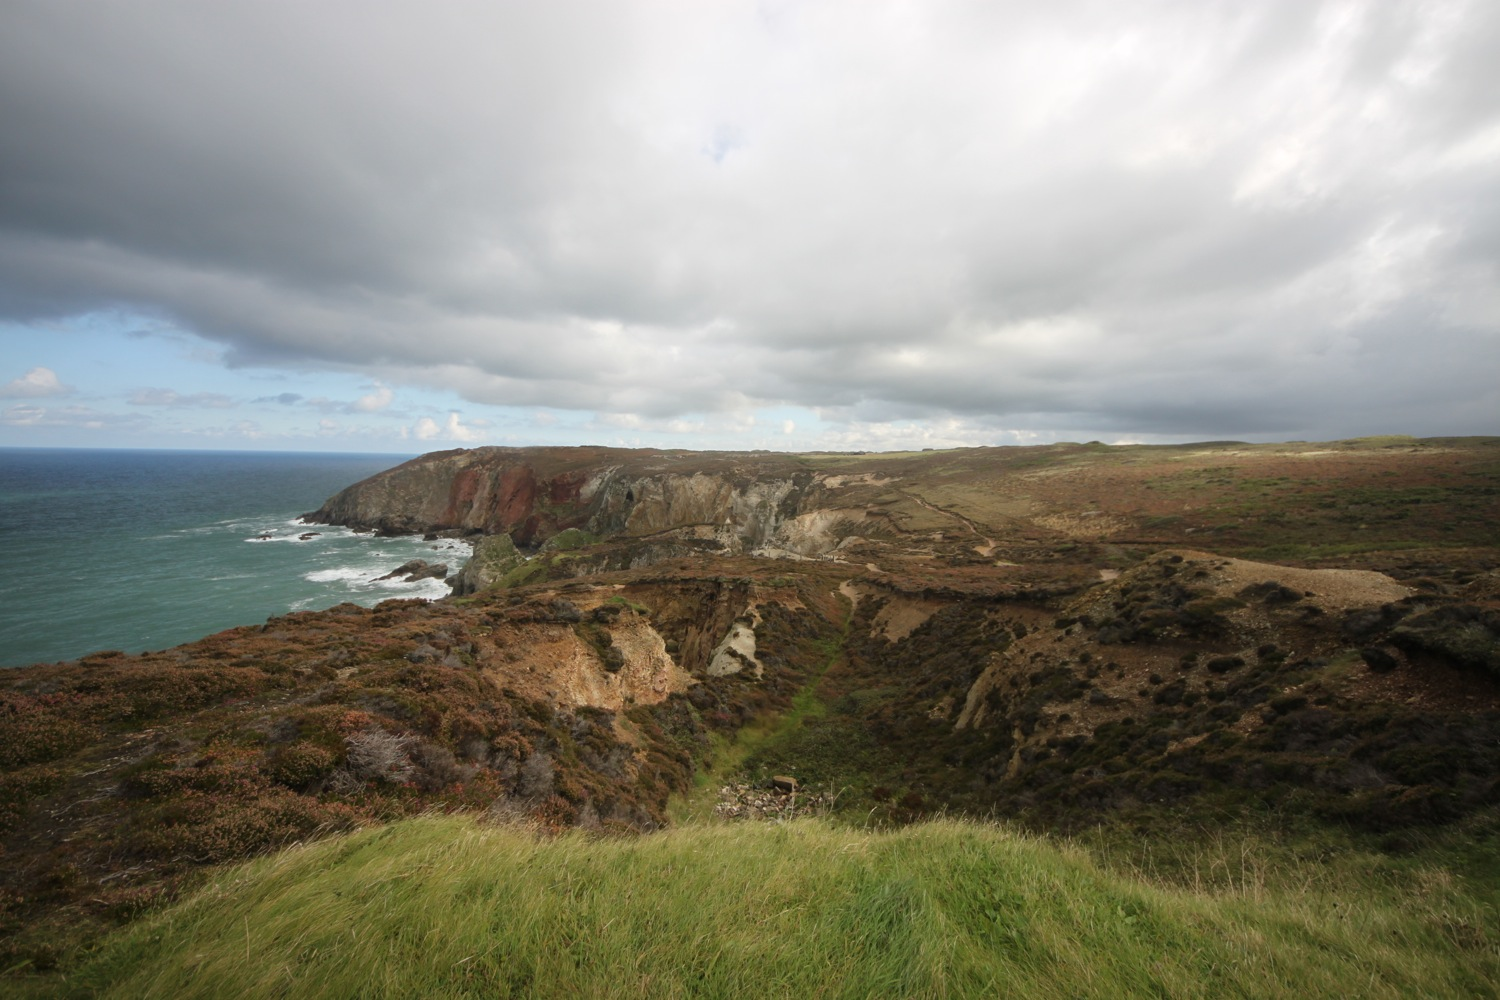 view back over cligga head